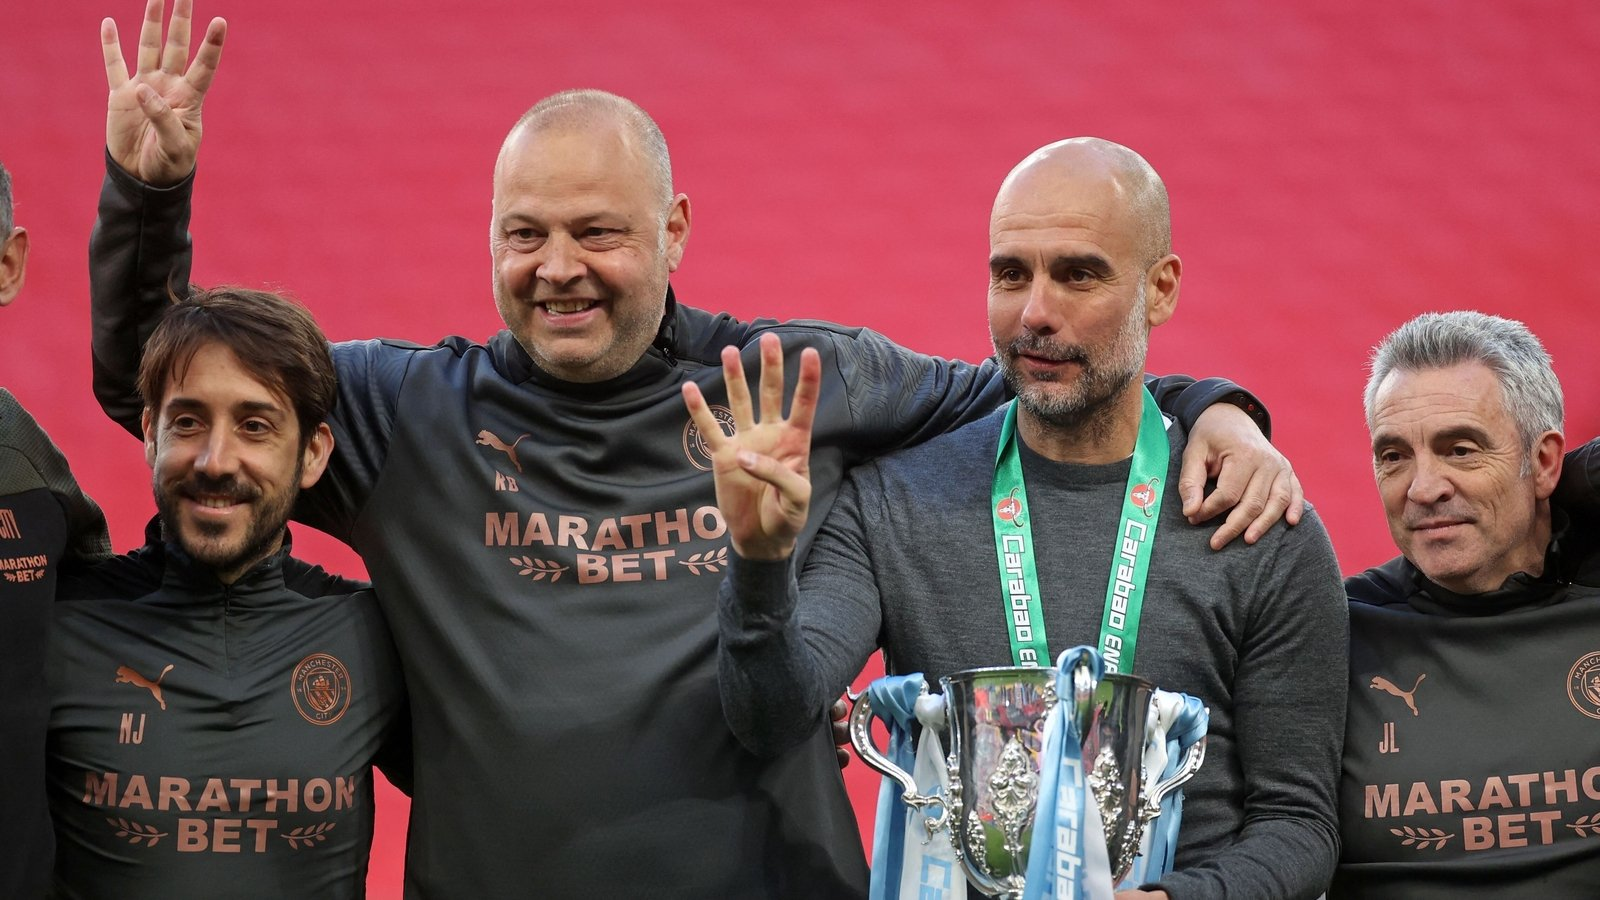 guardiola-toasts-glory-gadgets-sights-on-greater-prizes.jpg